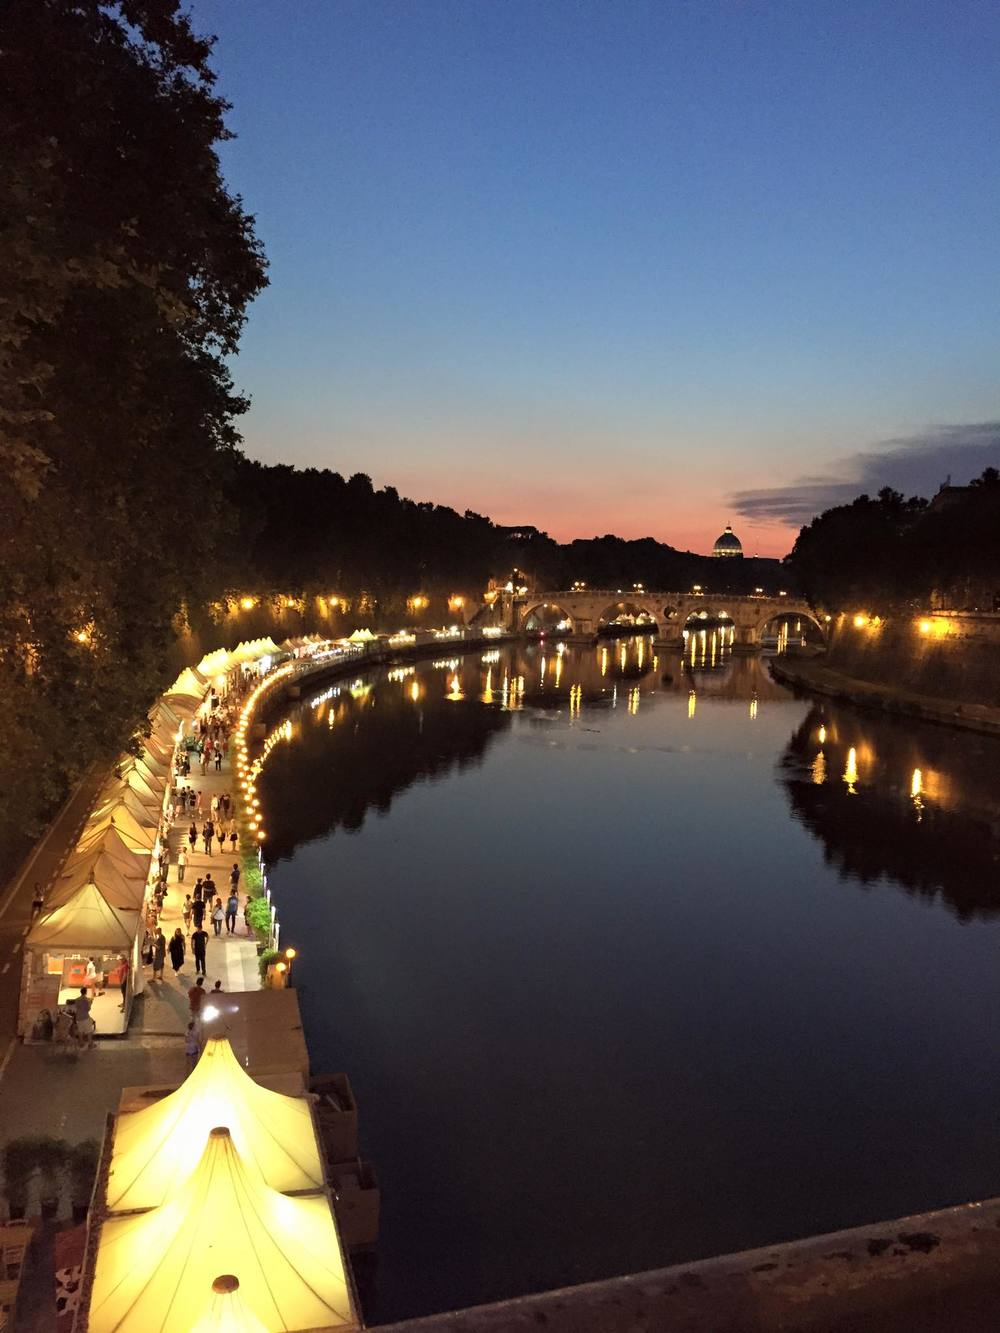 the summer night markets in Rome